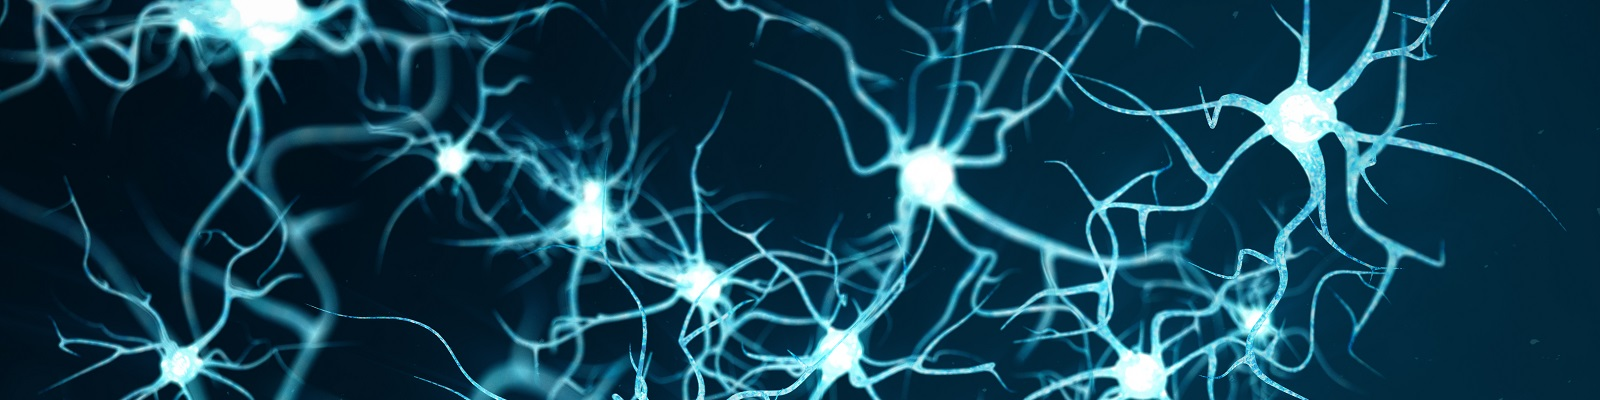 Neurons bounding about